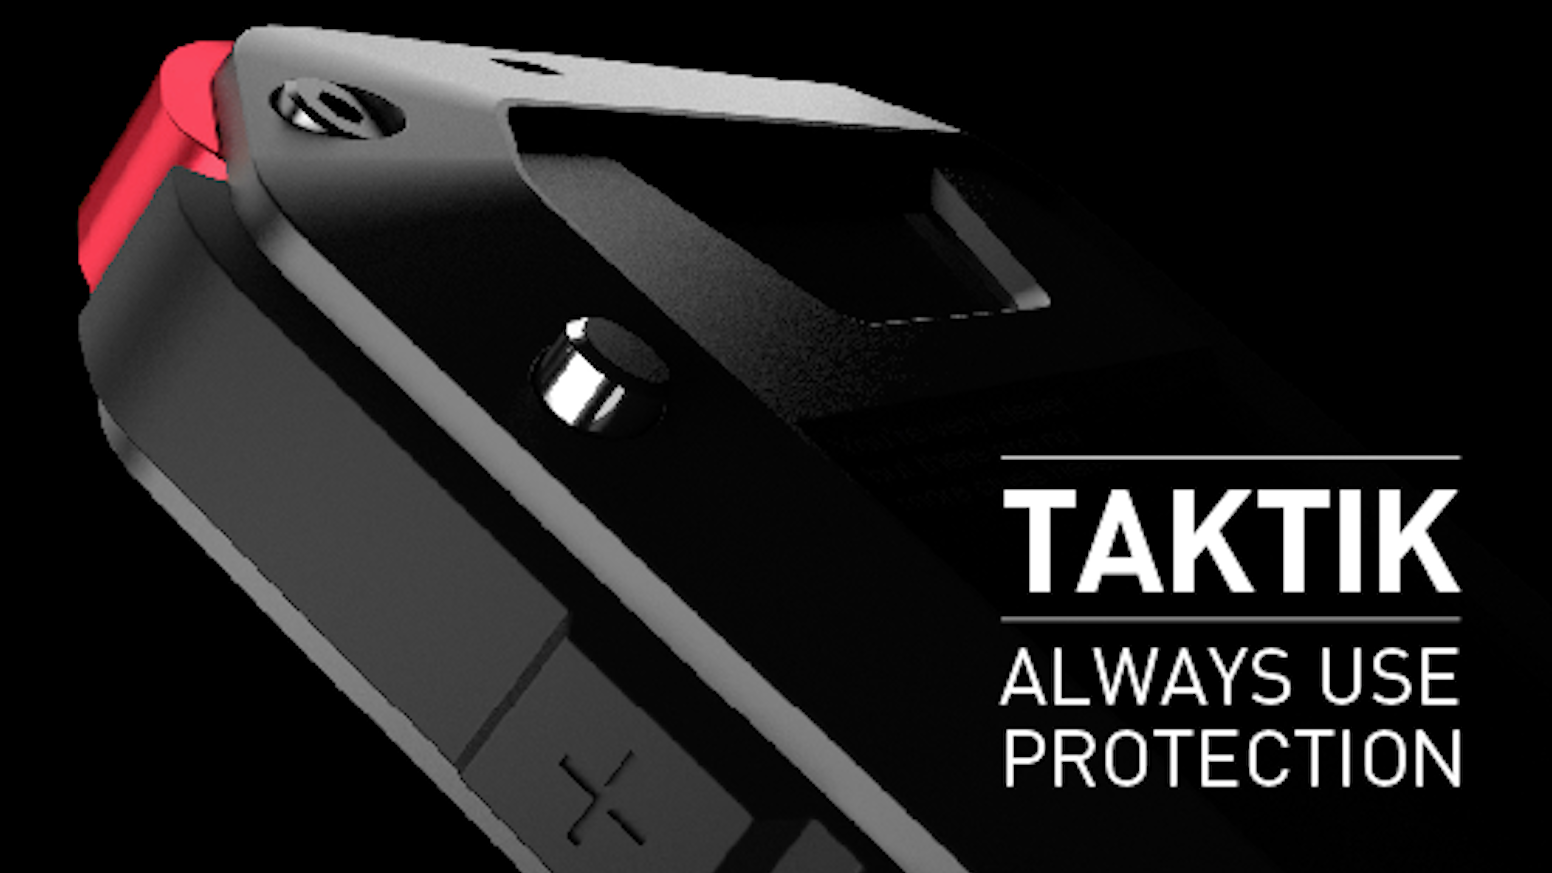 online retailer d1b30 d488d TAKTIK: Premium Protection System for the iPhone by Scott Wilson + ...